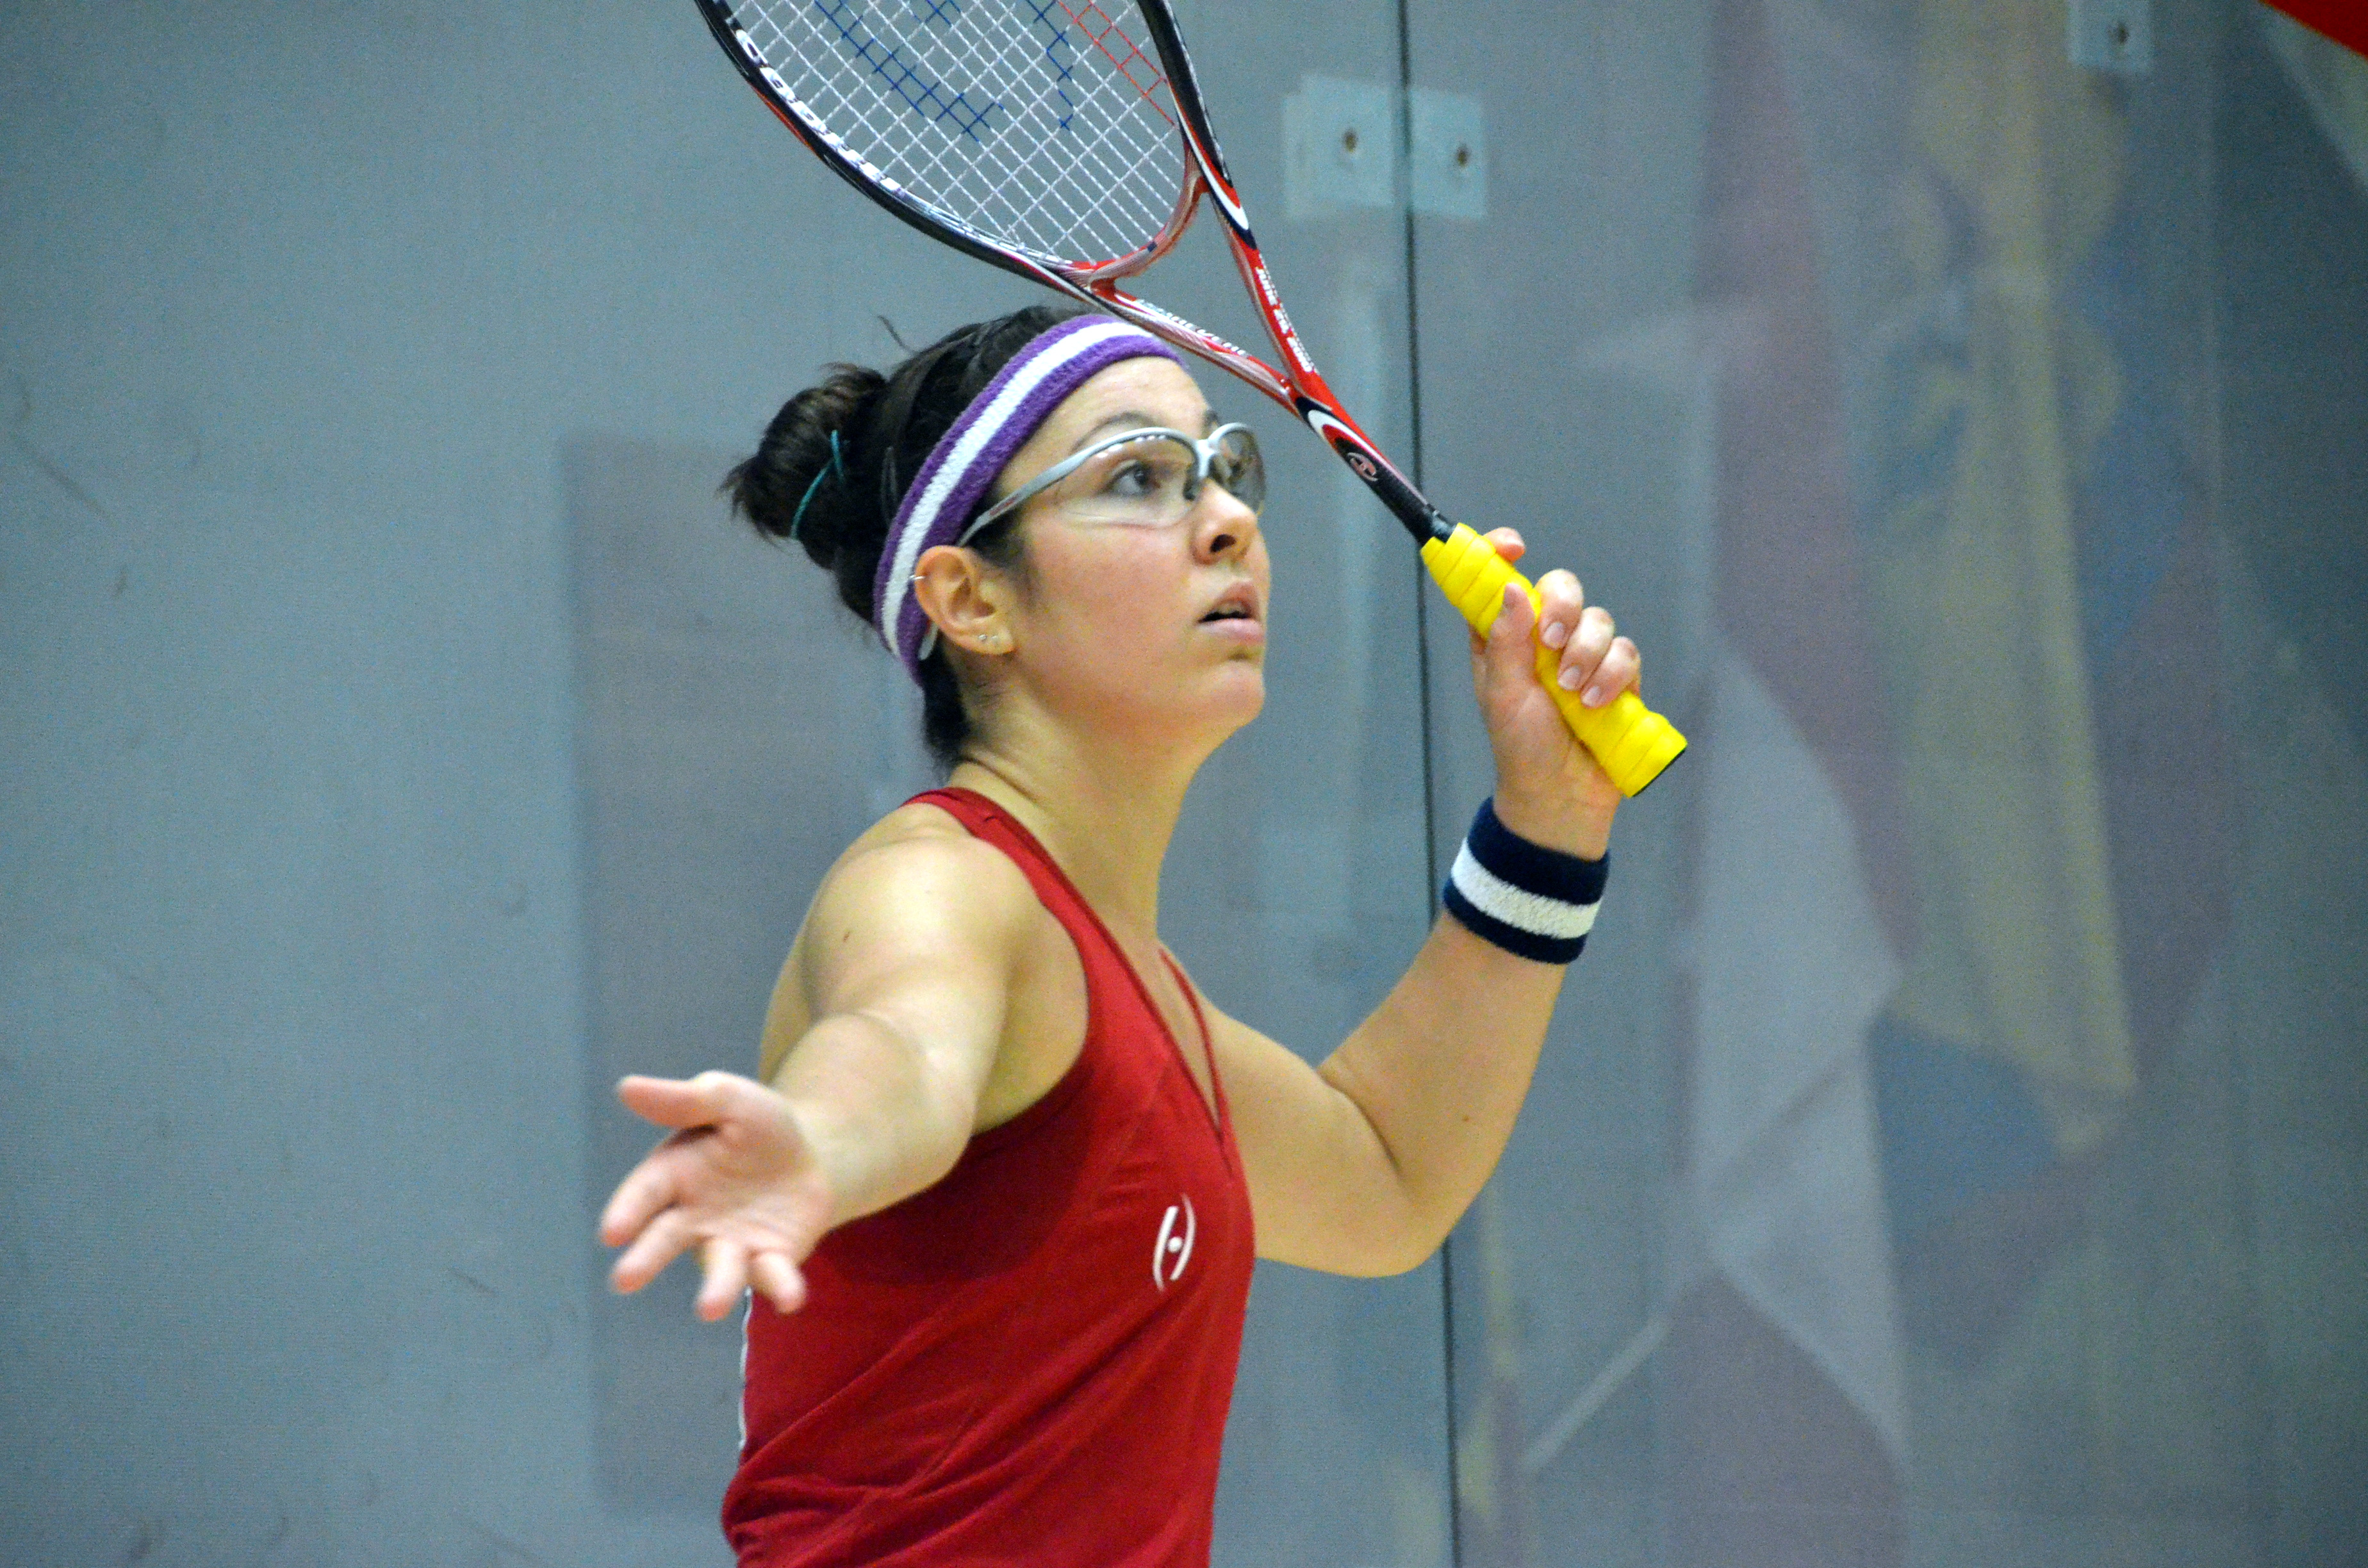 Squash Mad WSA: Sobhy soars to Maryland title - Squash Mad